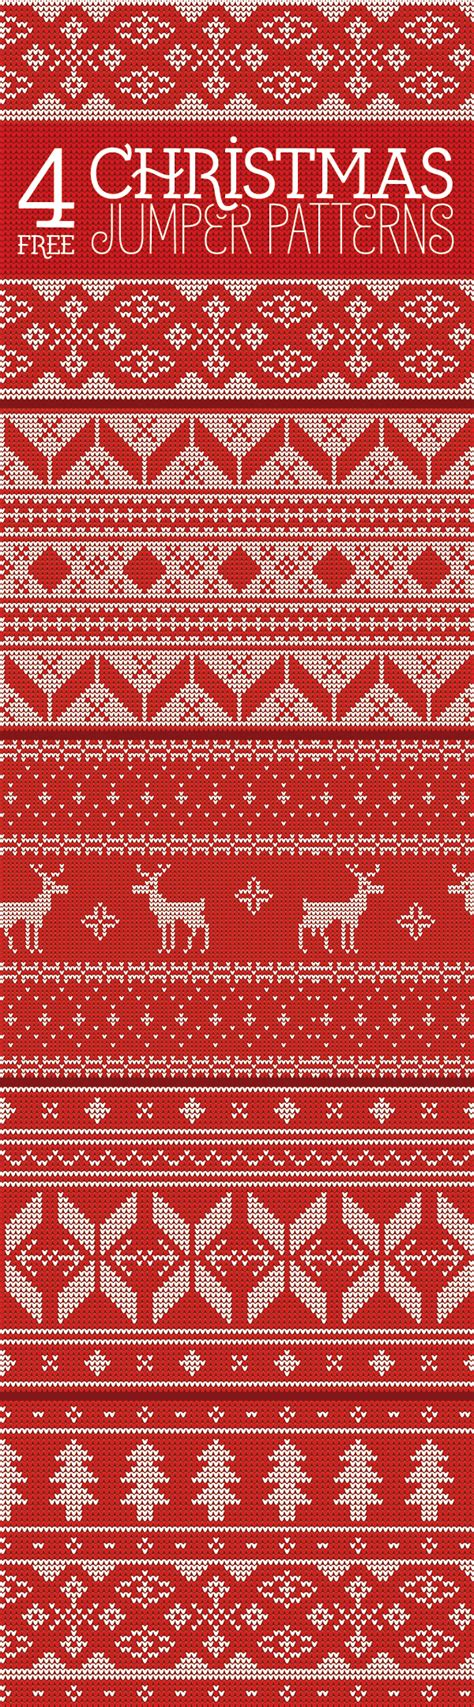 pattern for xmas jumper 4 free seamless knitted christmas jumper patterns idevie